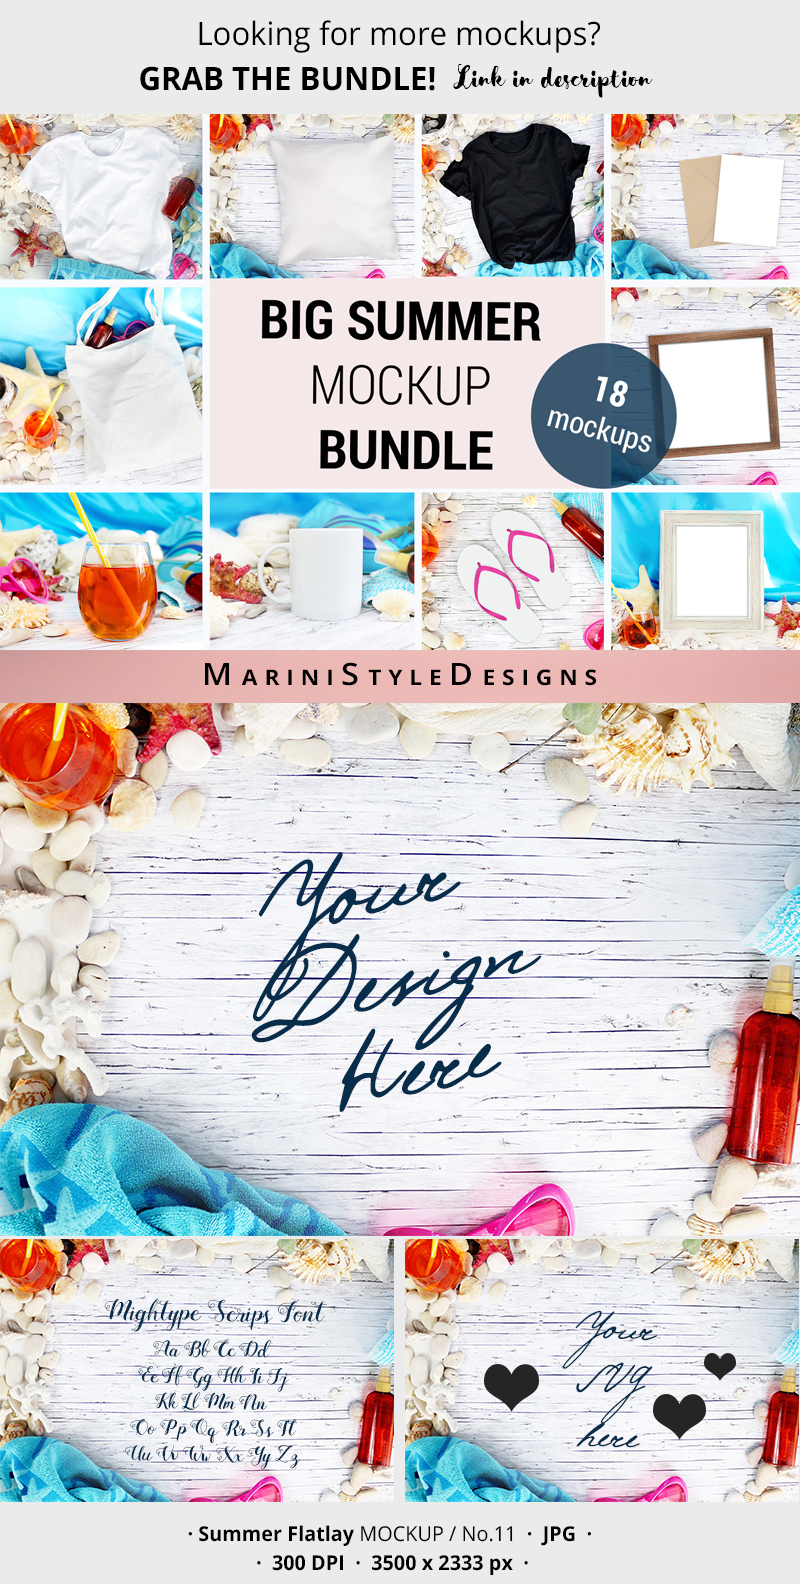 Summer Flatlay Mockup for SVG, beach background mockup, 959 example image 3